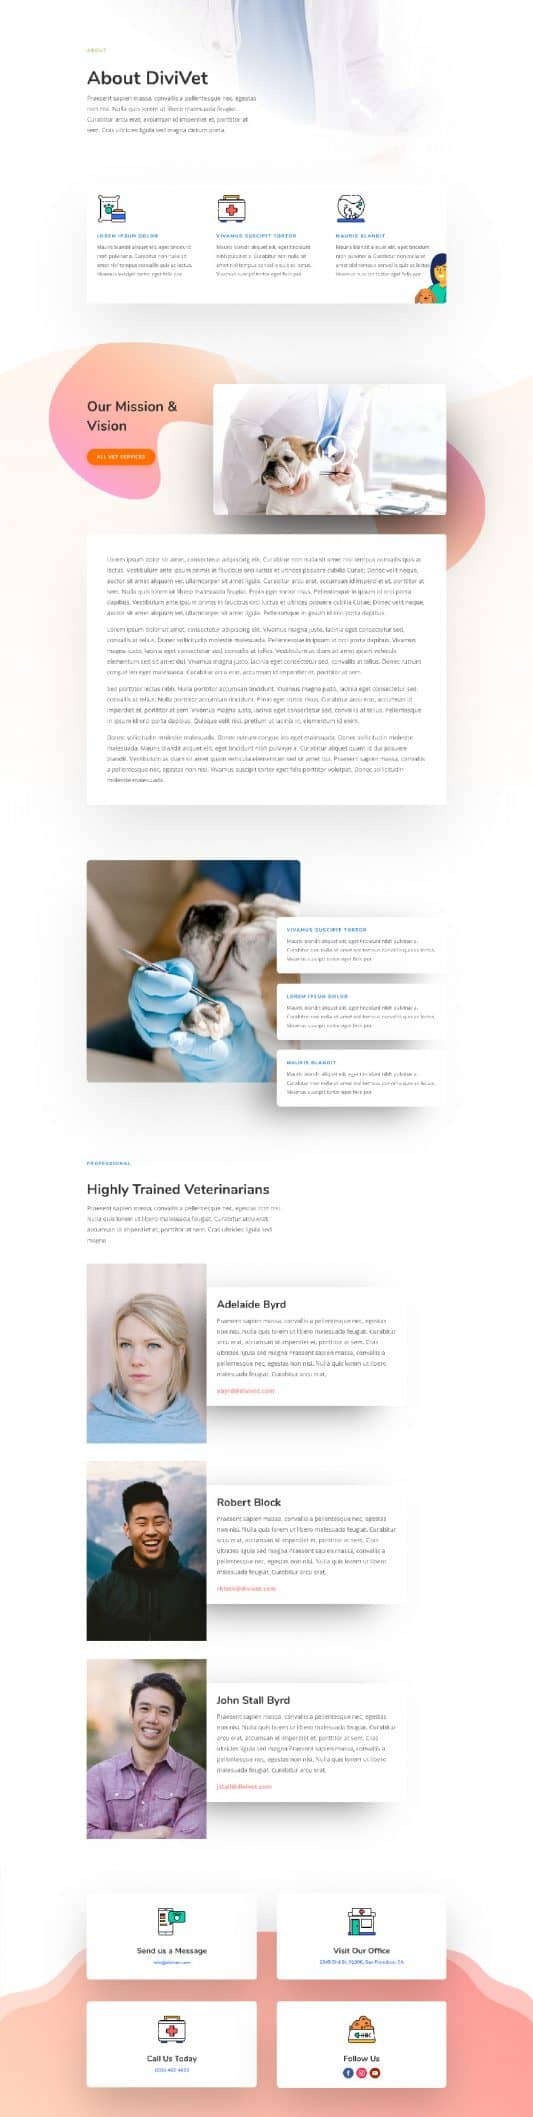 Veterinarian About Page Style 1